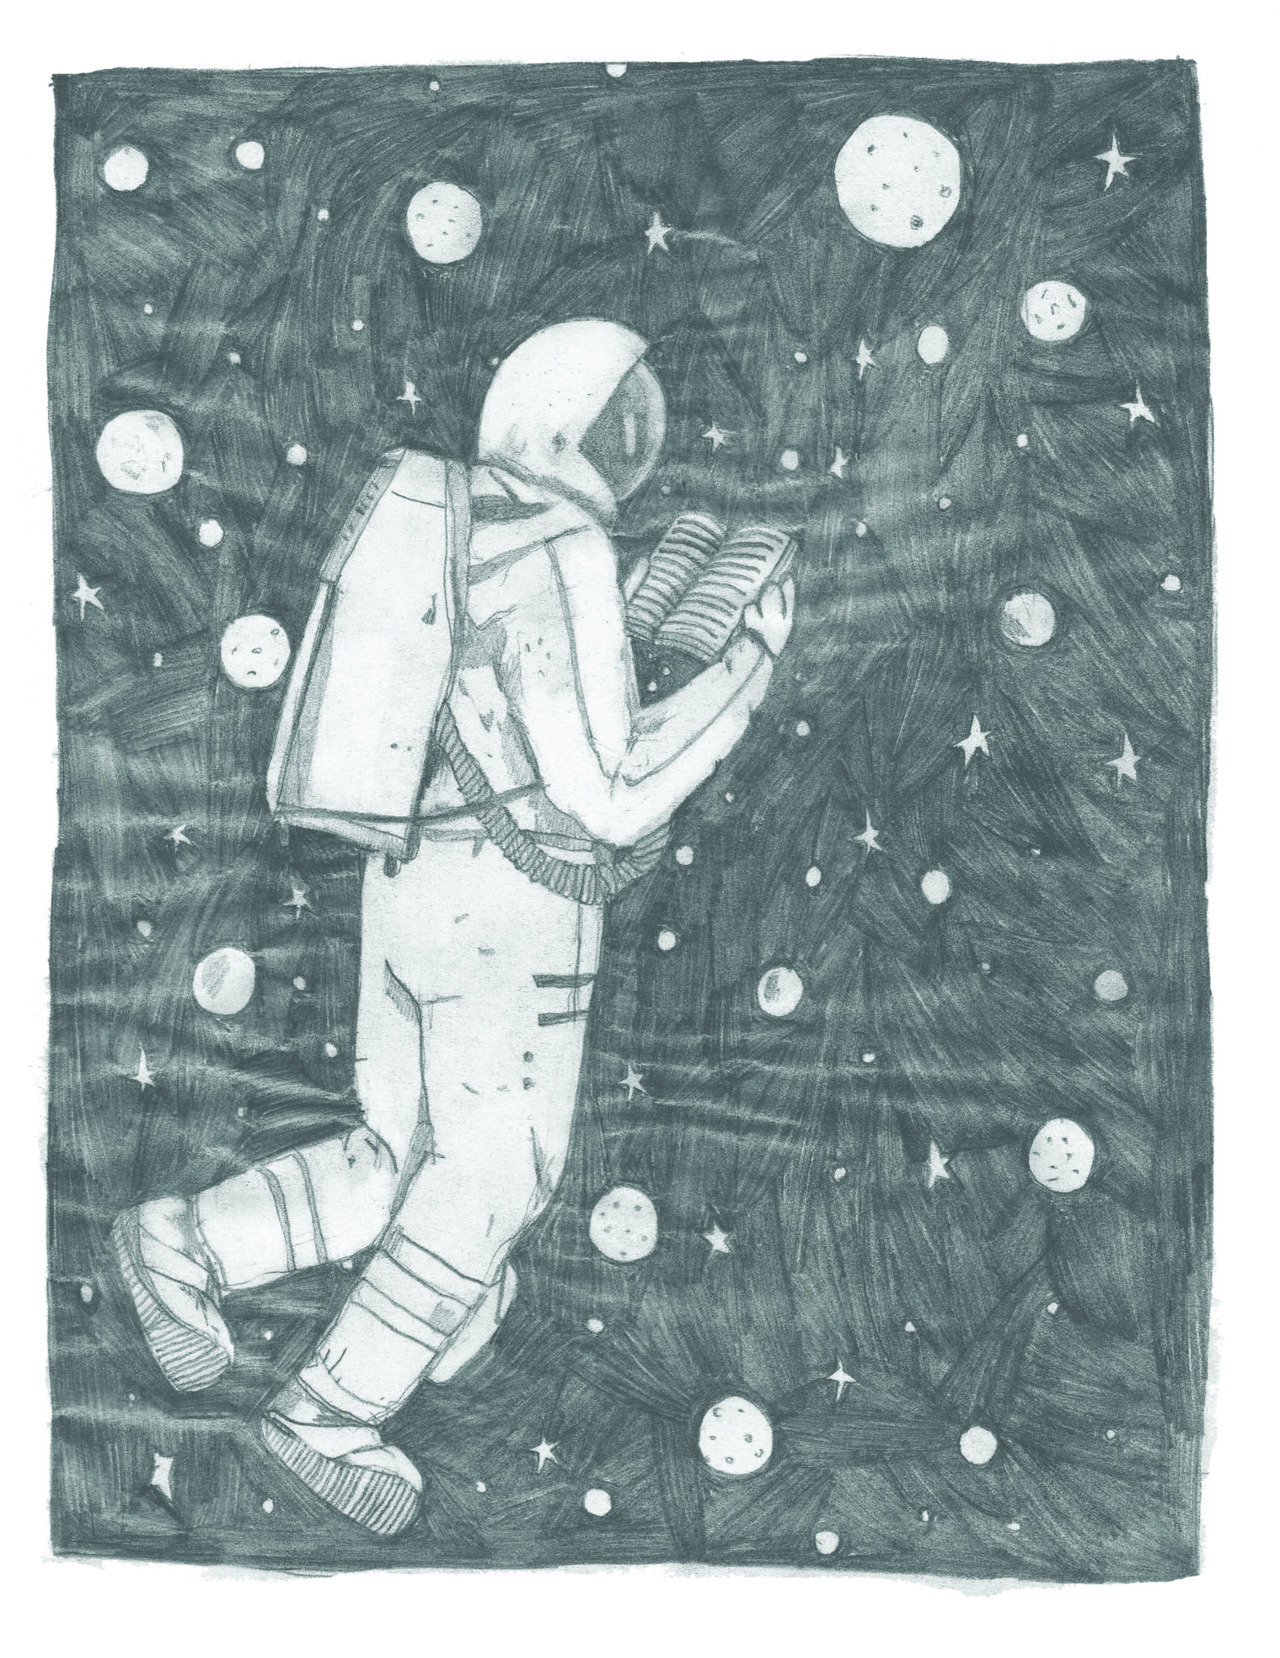 Hm ok so this is a quick draft for a story about a lonely astronaut but the paper turned all shiny and crinkly in the scanner so I won't be able to use it so I can show you guys my failure of the day. Back to work!